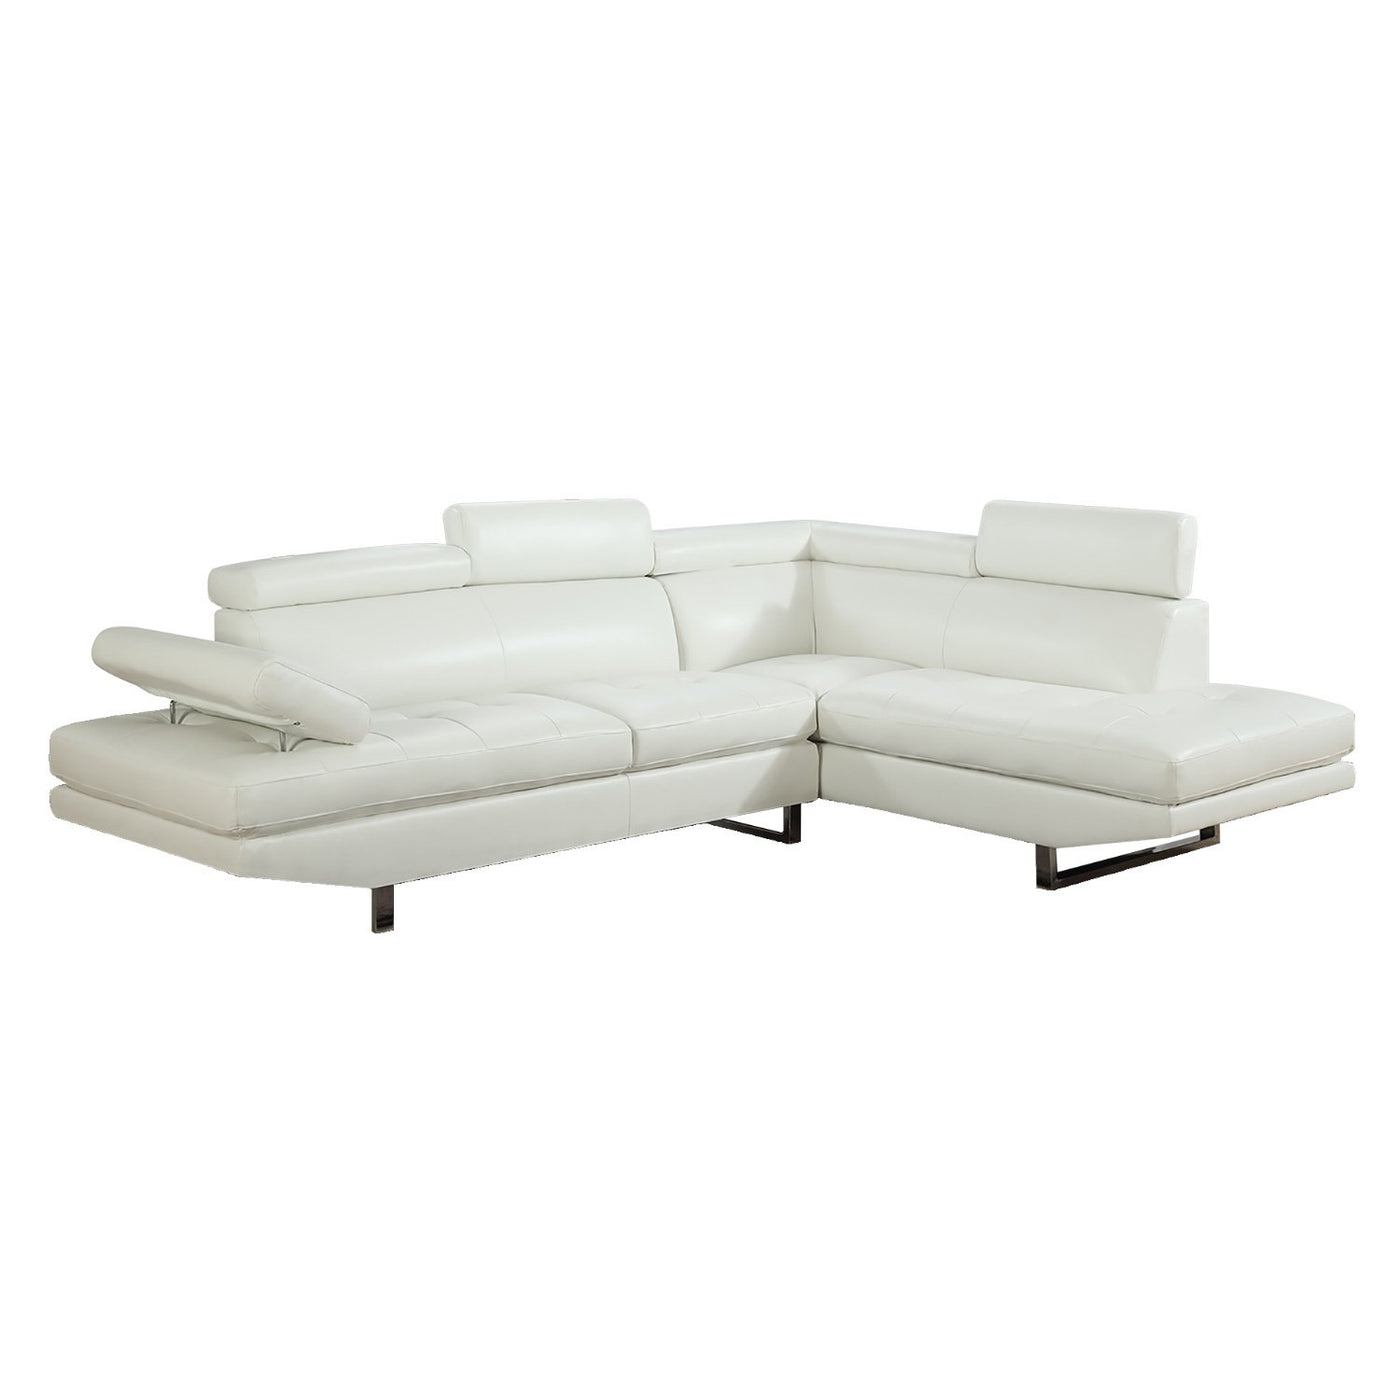 Wyatt Sectional With RAF Chaise   White